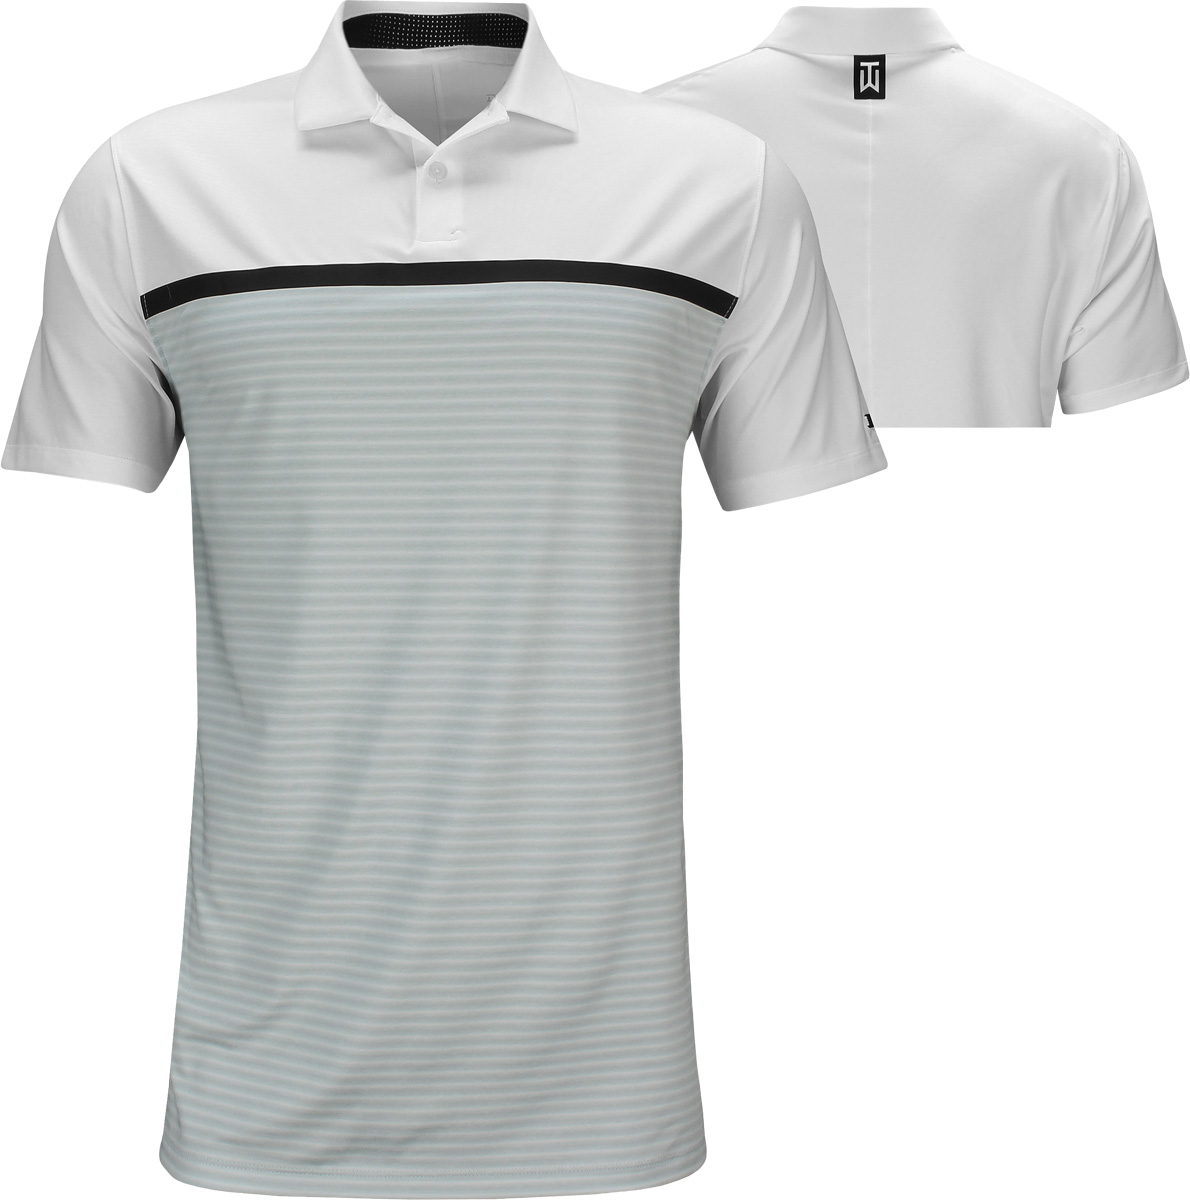 3da5c0d8 Nike Dri-FIT Tiger Woods Vapor Stripe Block Golf Shirts - White - Tiger  Woods PGA Championship - Saturday